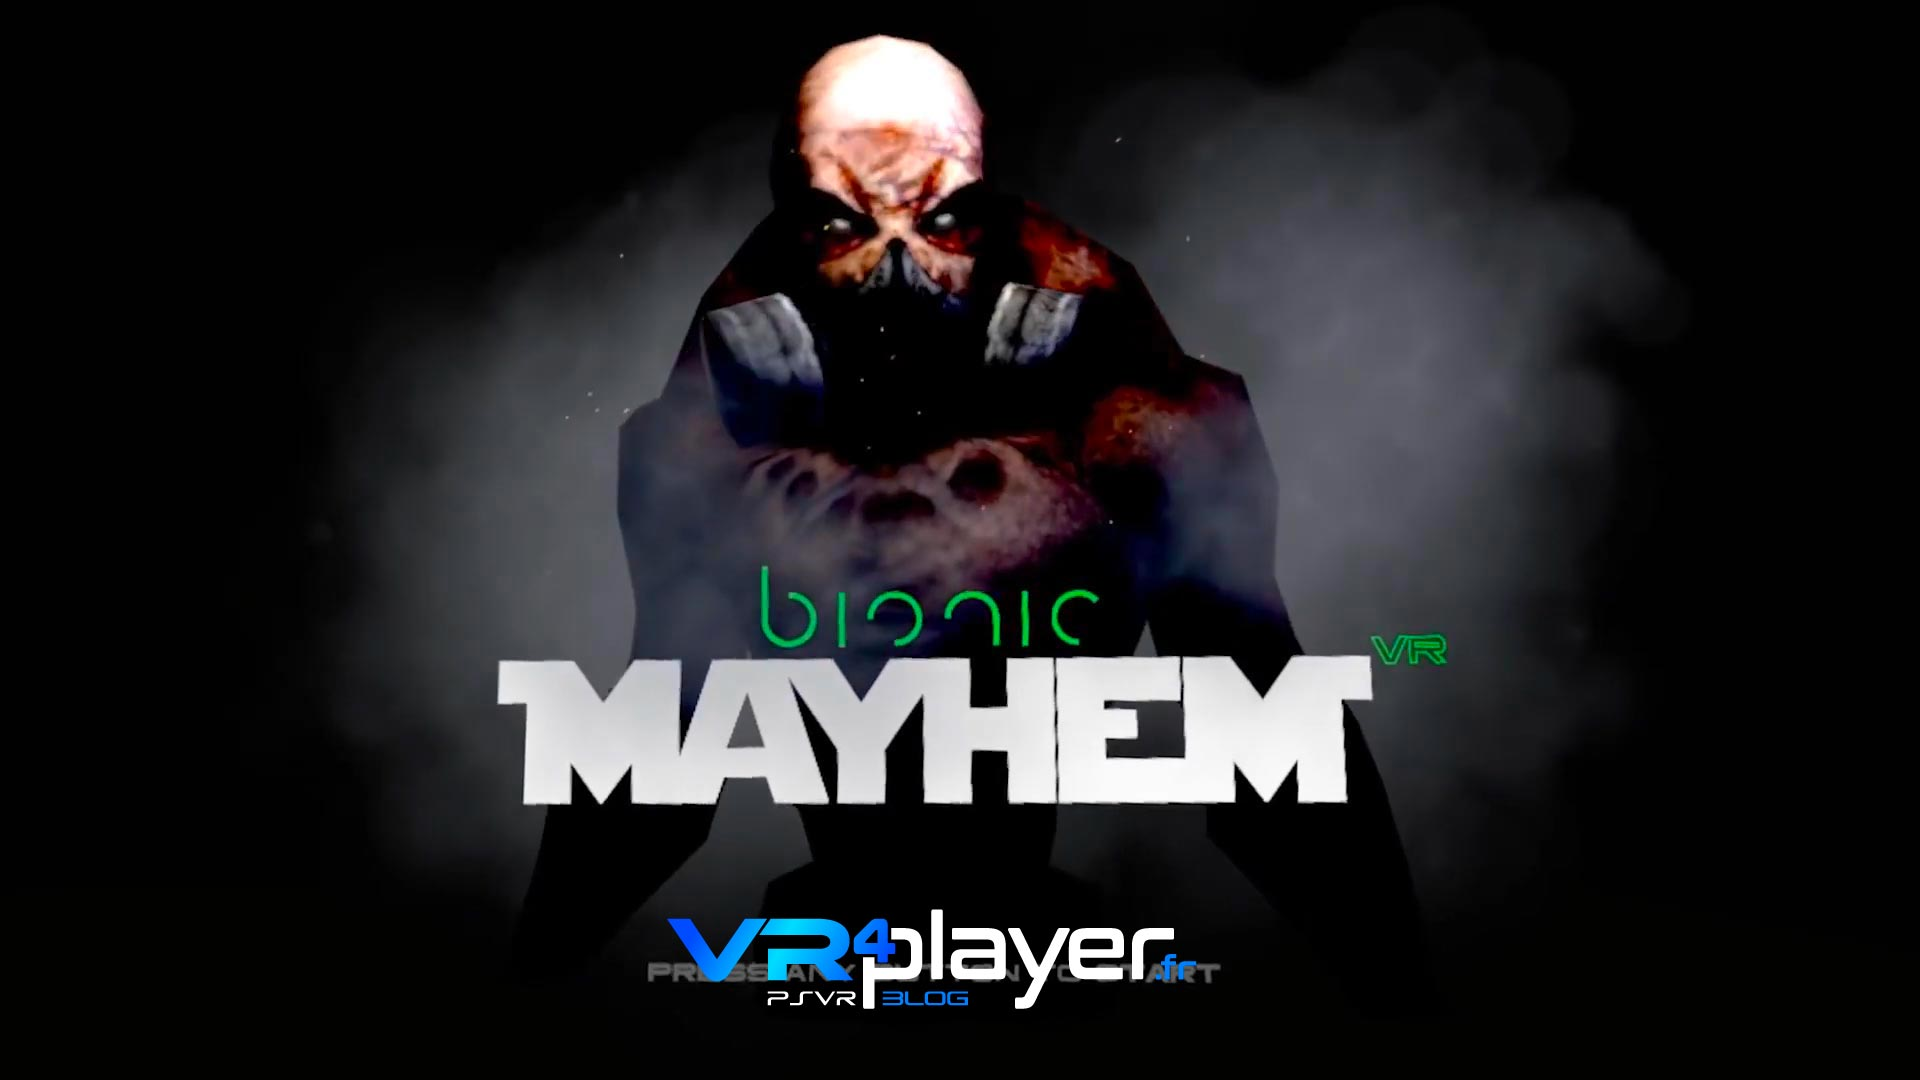 Bionic Mayhem sur PlayStation VR, PSVR VR4player.fr